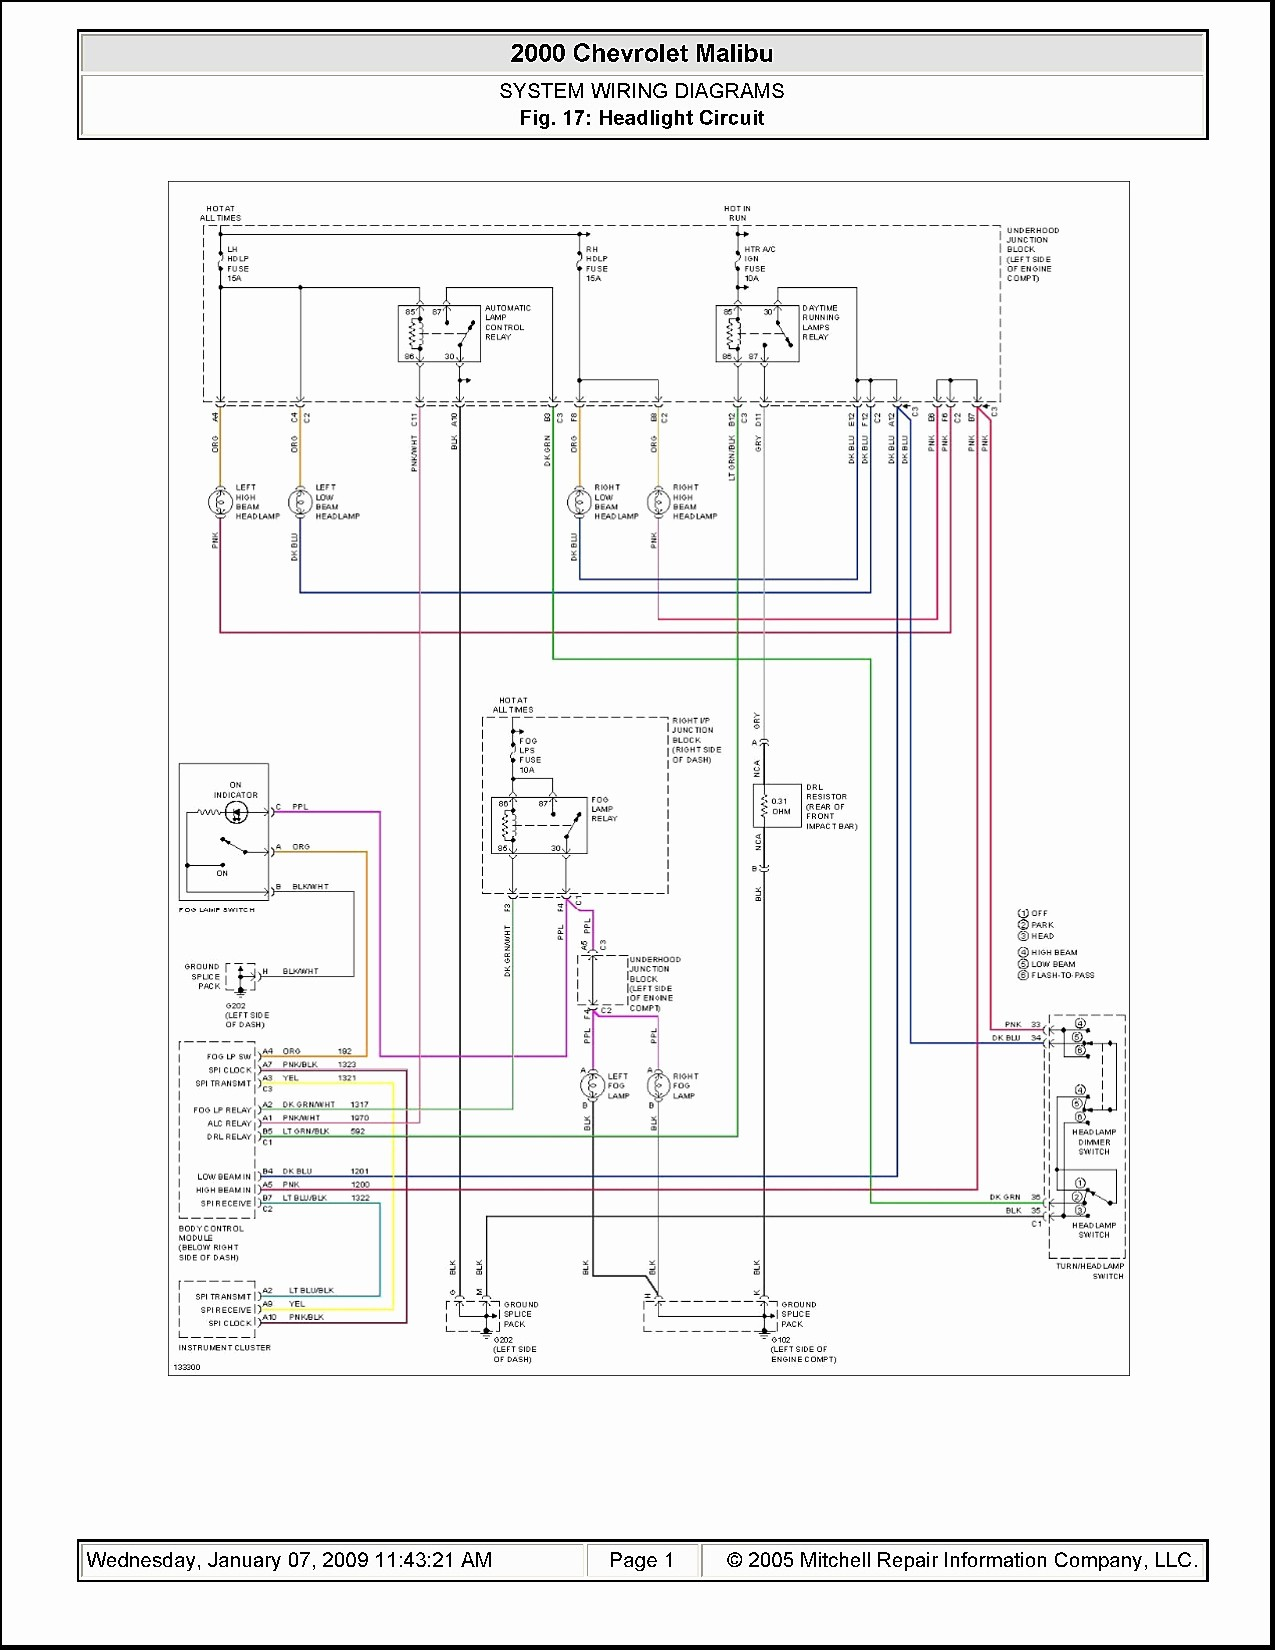 2001 Santa Fe Wiring Schematic Diagrams Fuse Diagram 2003 Tiburon Hazard Hyundai Exhaust Block And U2022 Reliability